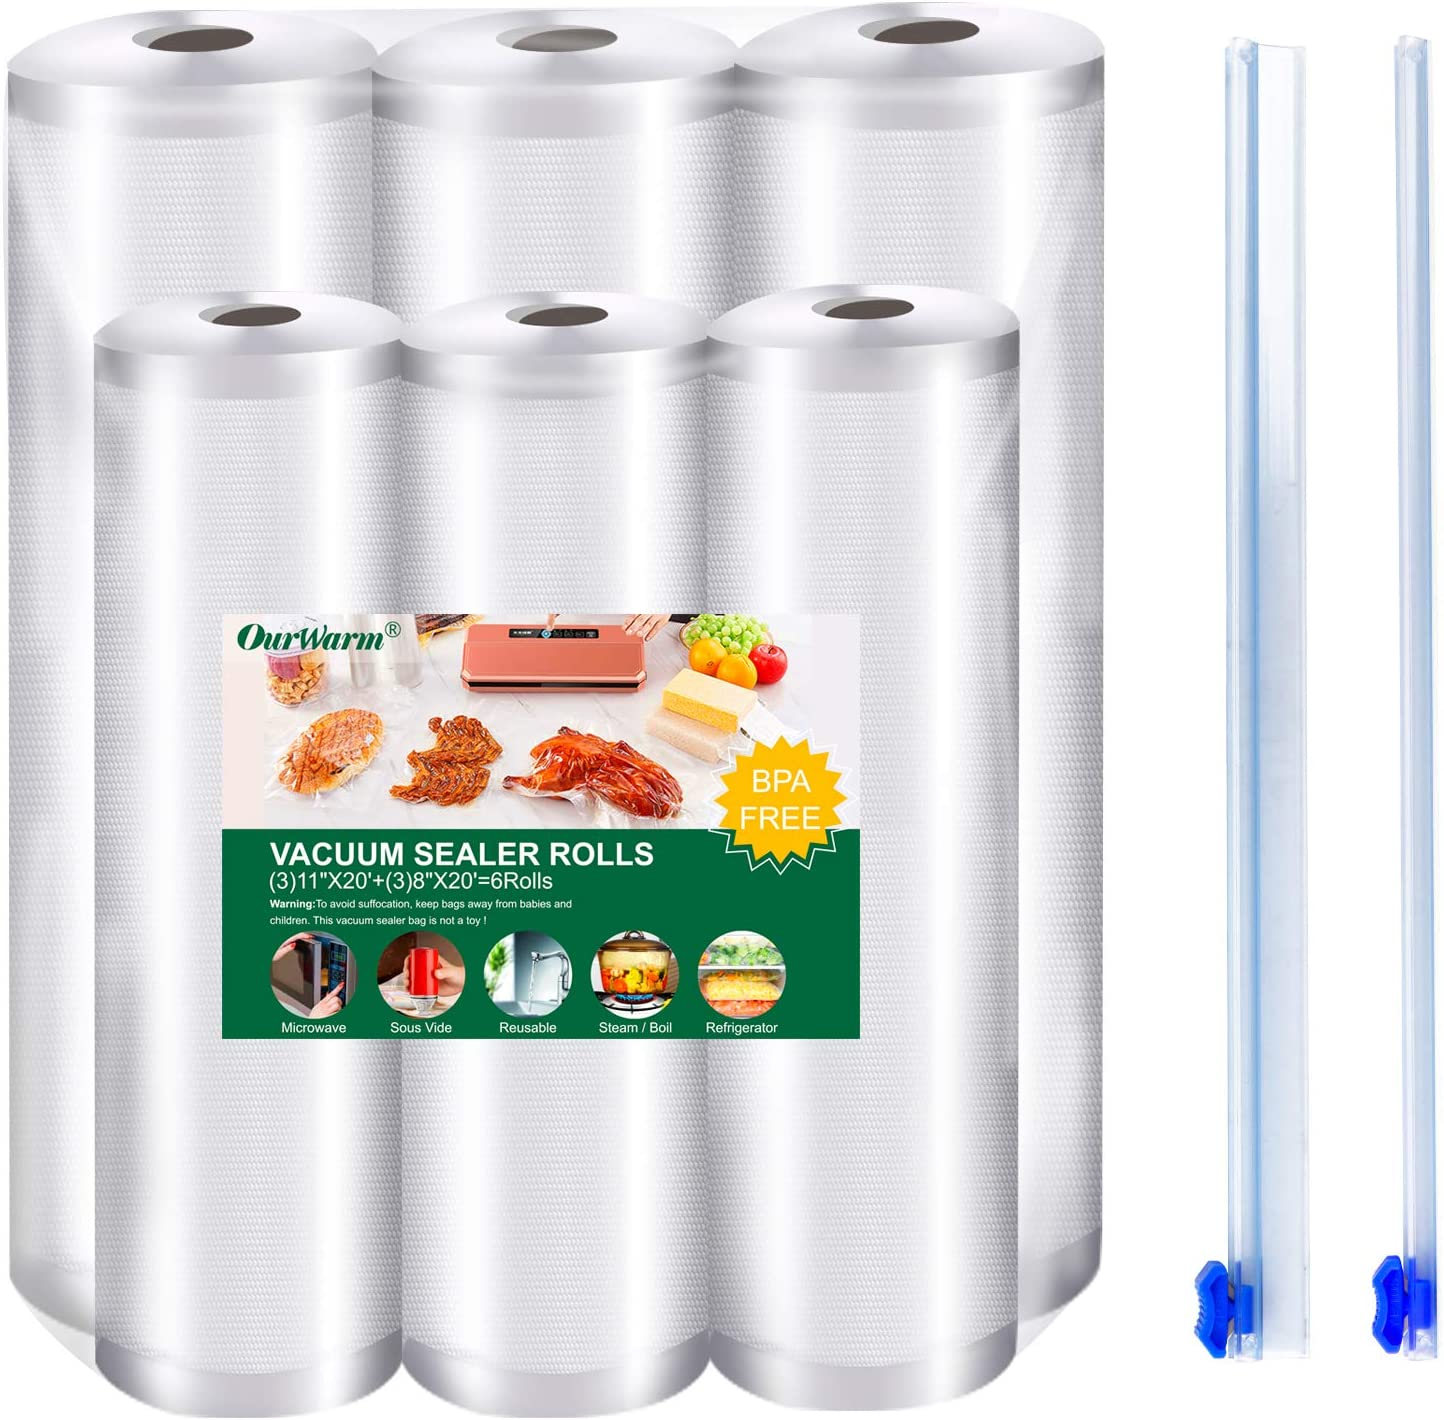 OurWarm 6 Pack Food Saver Vacuum Sealer Bags Rolls, Seal a Meal, BPA Free, Heavy Duty Food Storage Bags Kitchen Accessories, for Sous Vide and Vac Seal Bags Storage 8